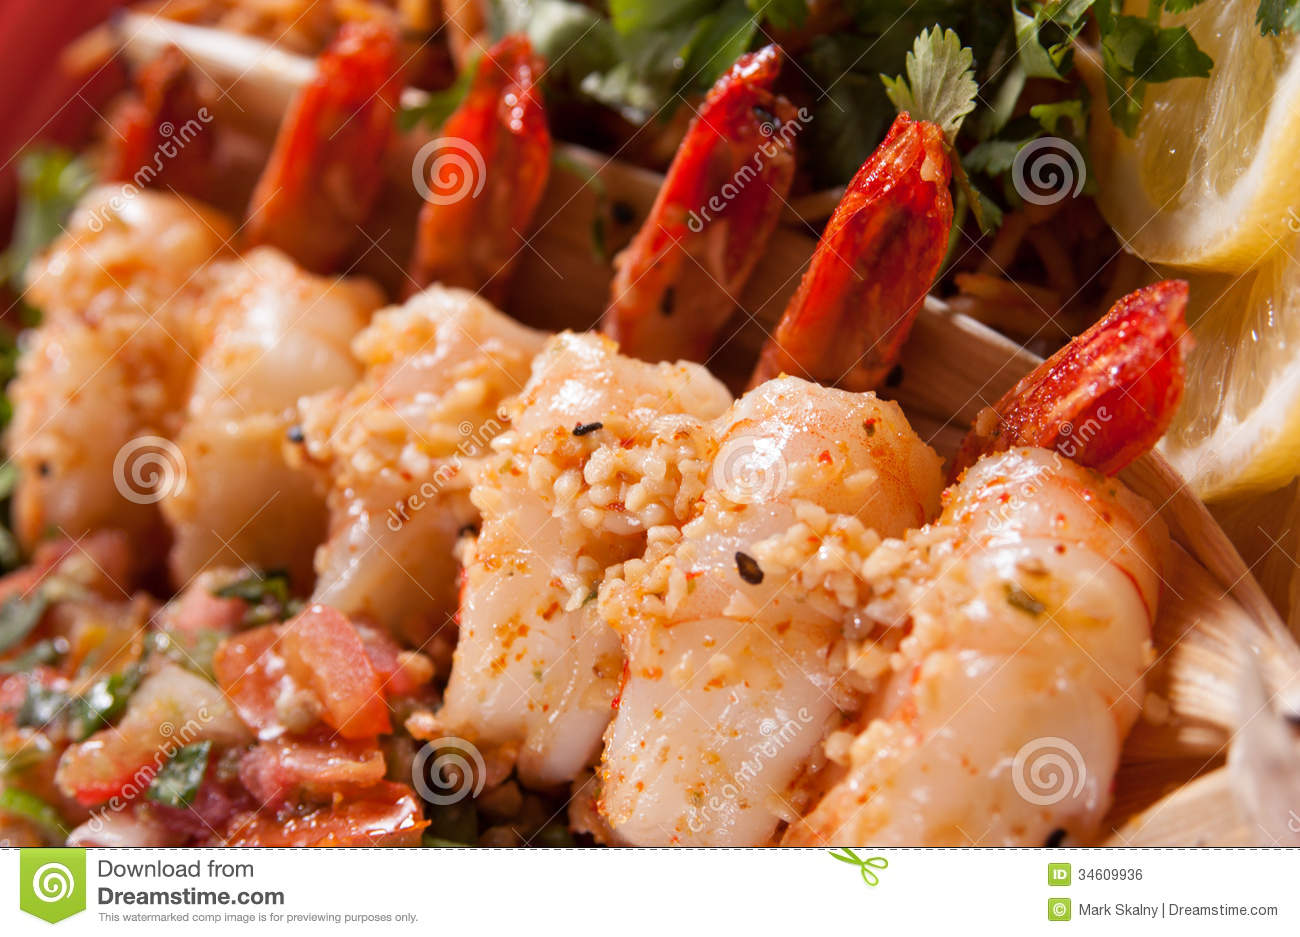 Sauteed Shrimp Royalty Free Stock Image - Image: 34609936